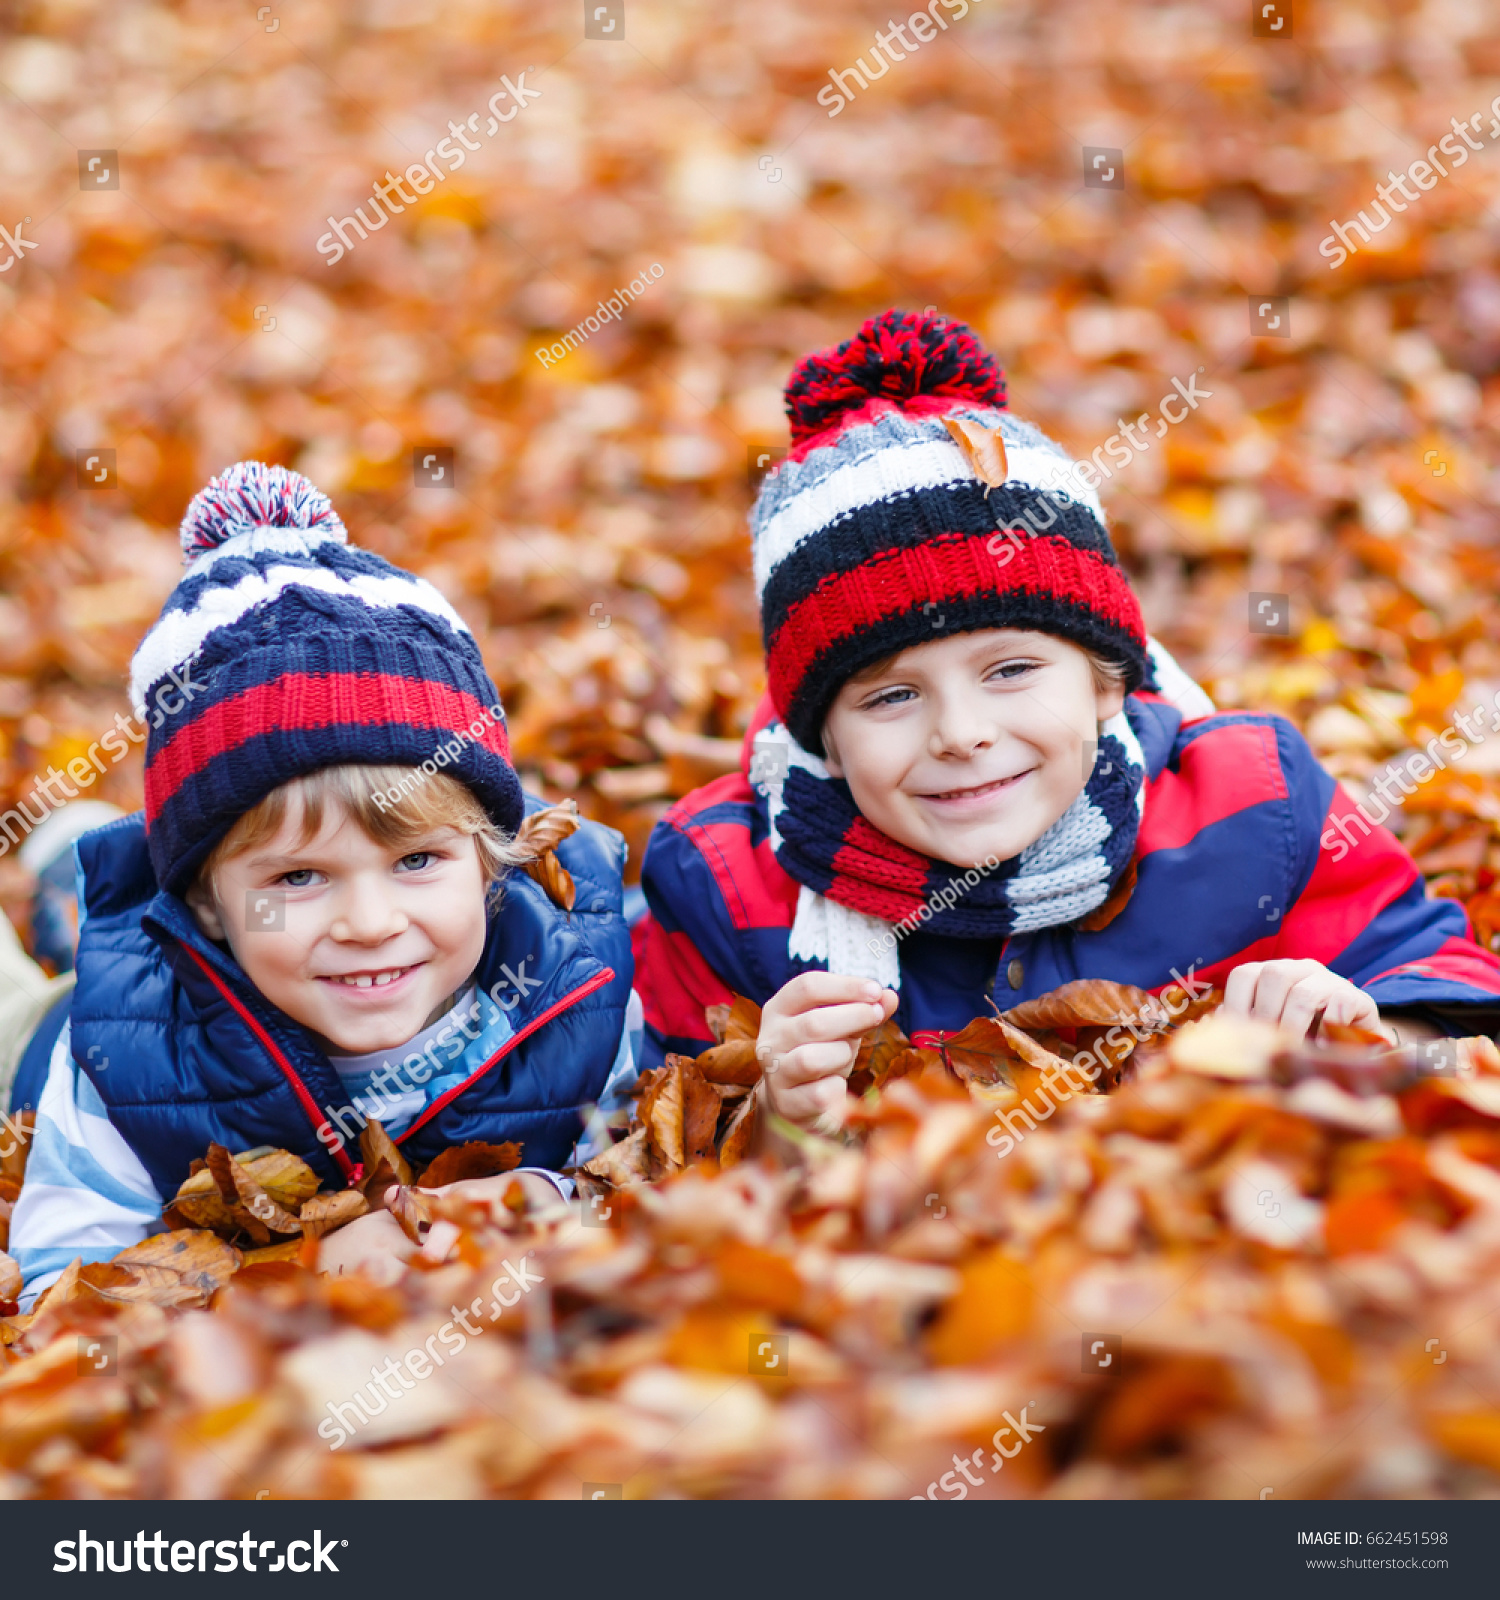 ce4ce021f53 Two little friends boys lying in autumn leaves in colorful clothing. Happy  siblings kids having fun in autumn forest or park on warm fall day. With  hats and ...